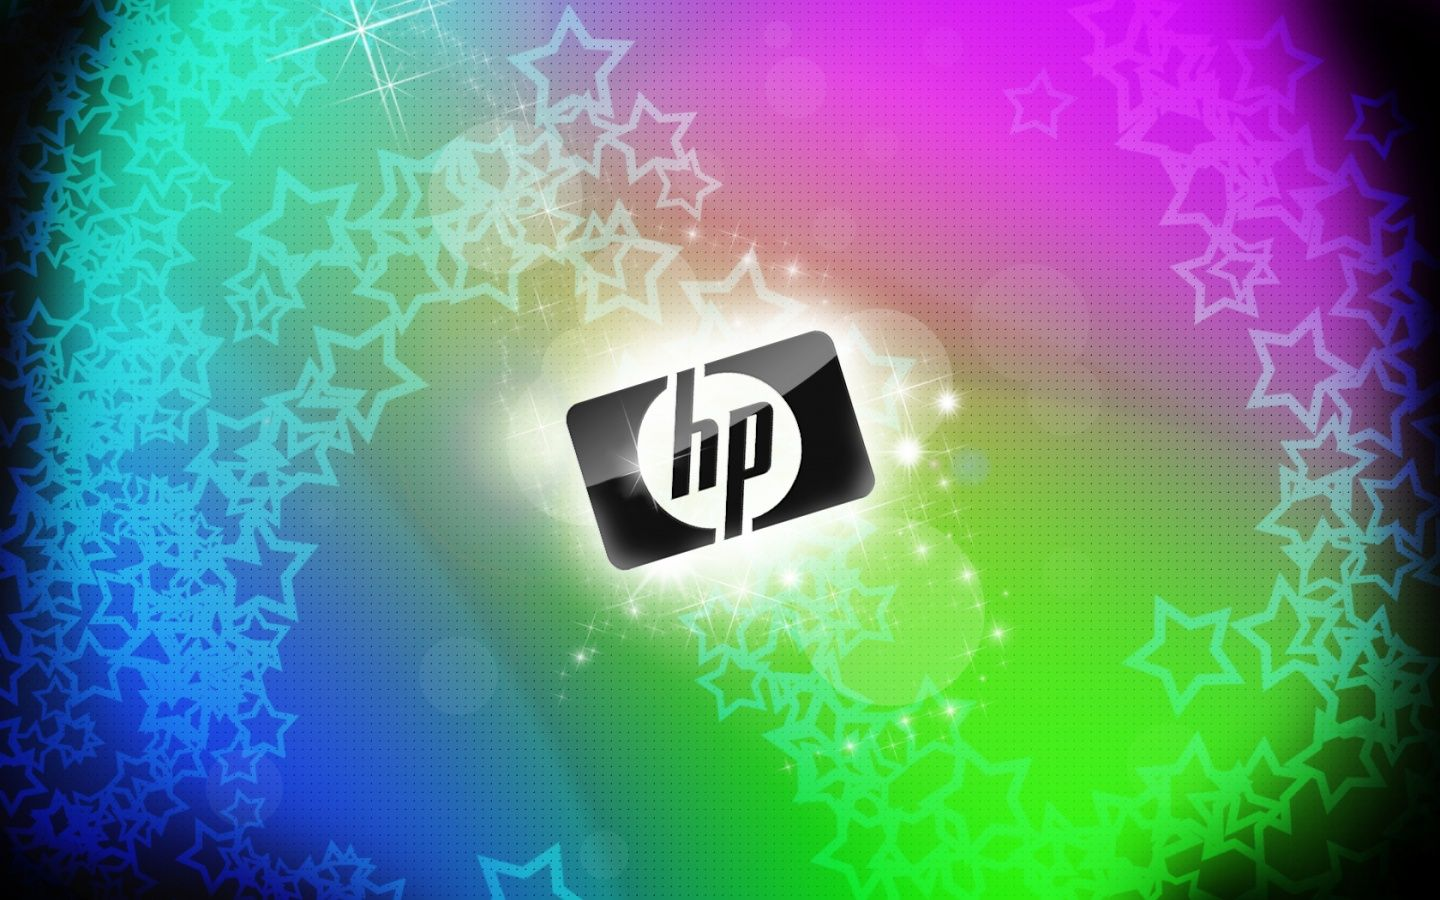 3D HP Wallpaper   WallpaperSafari   All Wallpapers   Pinterest   3d     3D HP Wallpaper   WallpaperSafari